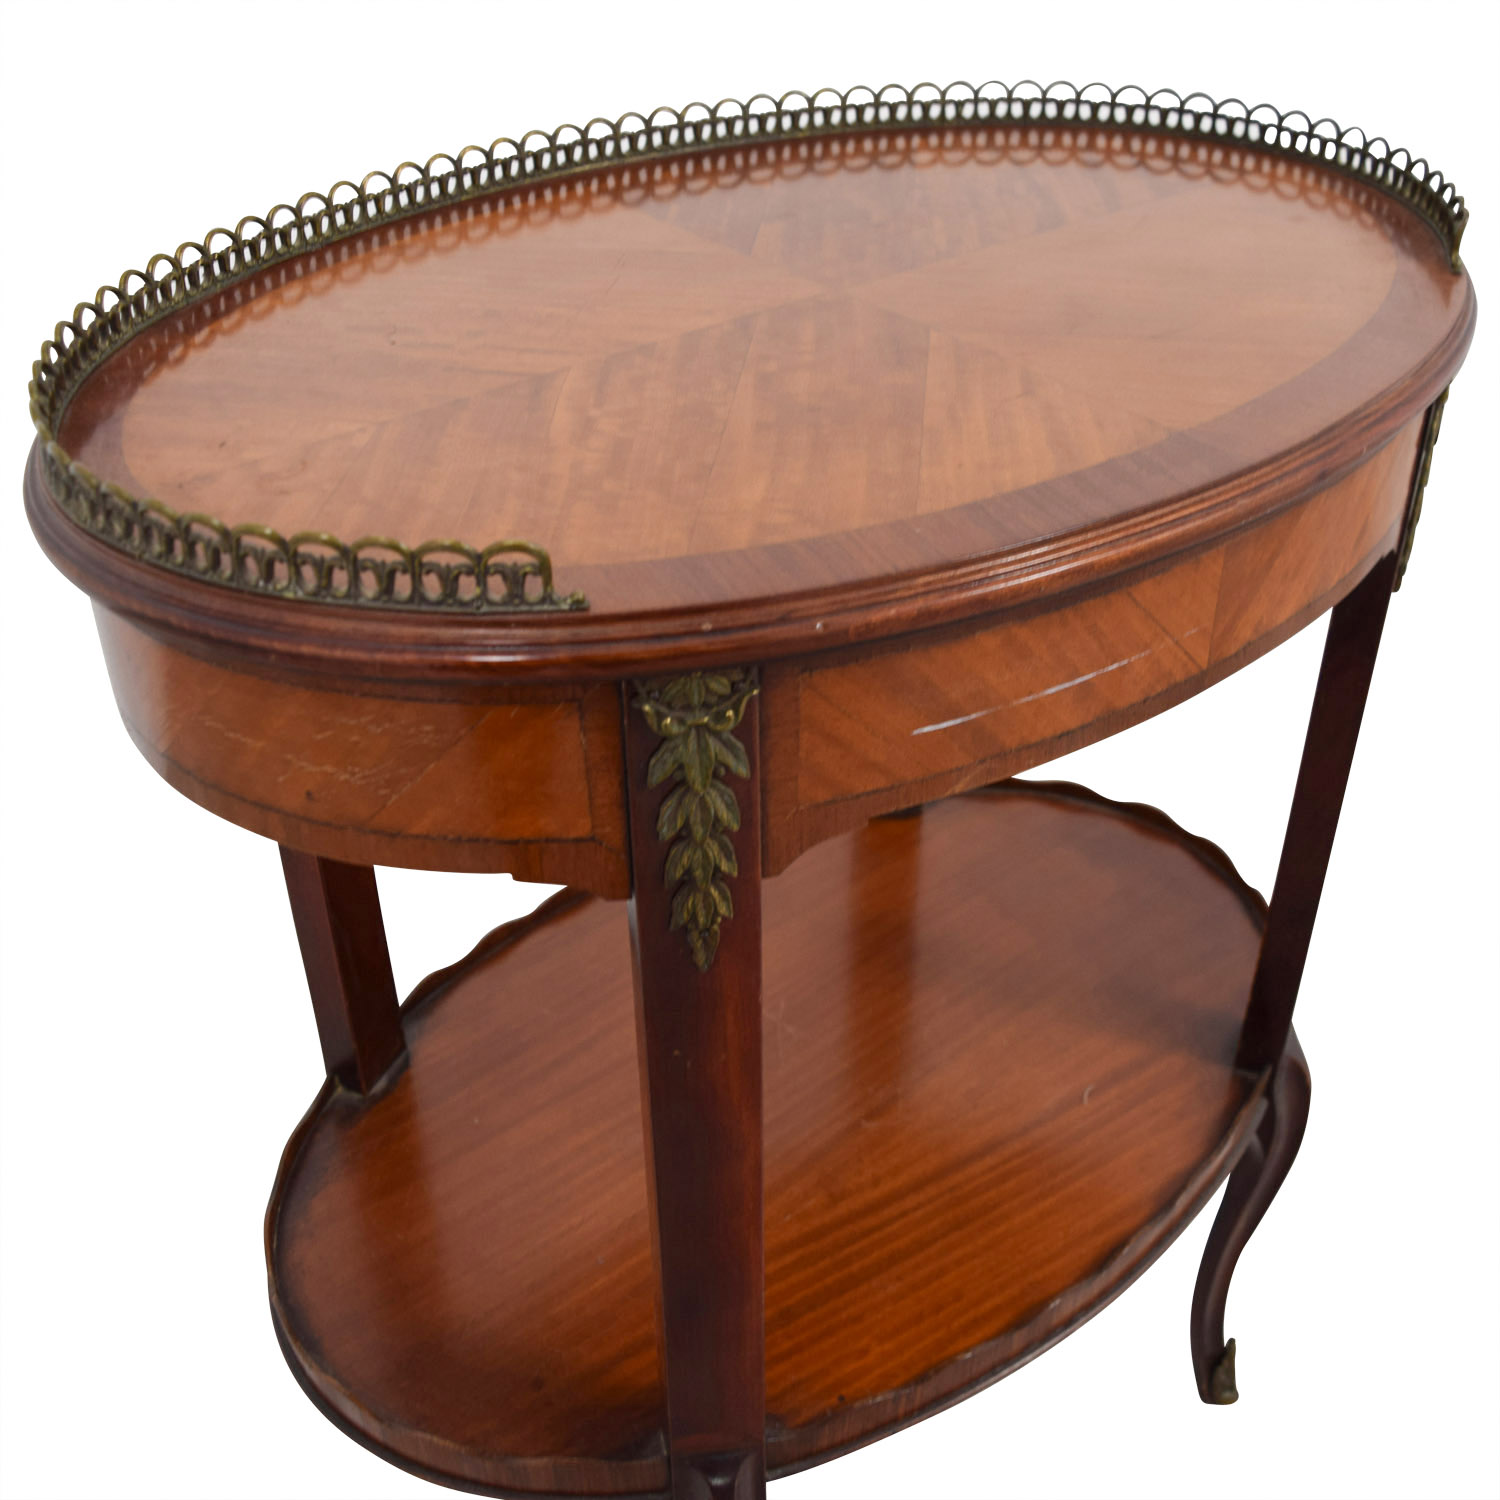 Furniture Masters Furniture Masters Oval End Table with Scalloped and Brass Edges price